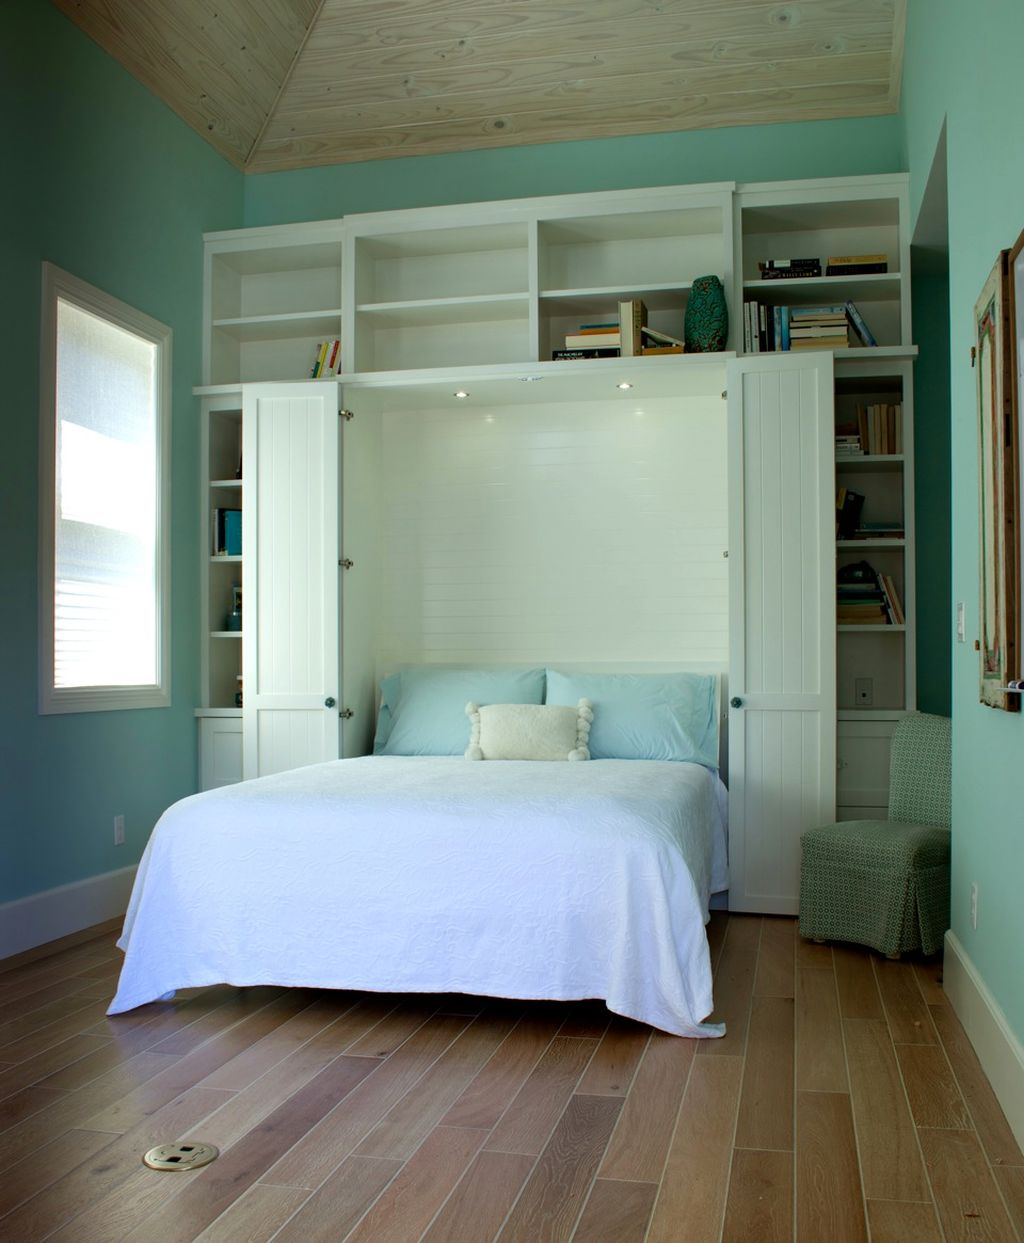 20 space saving murphy bed design ideas for small rooms - Small space bed ideas gallery ...